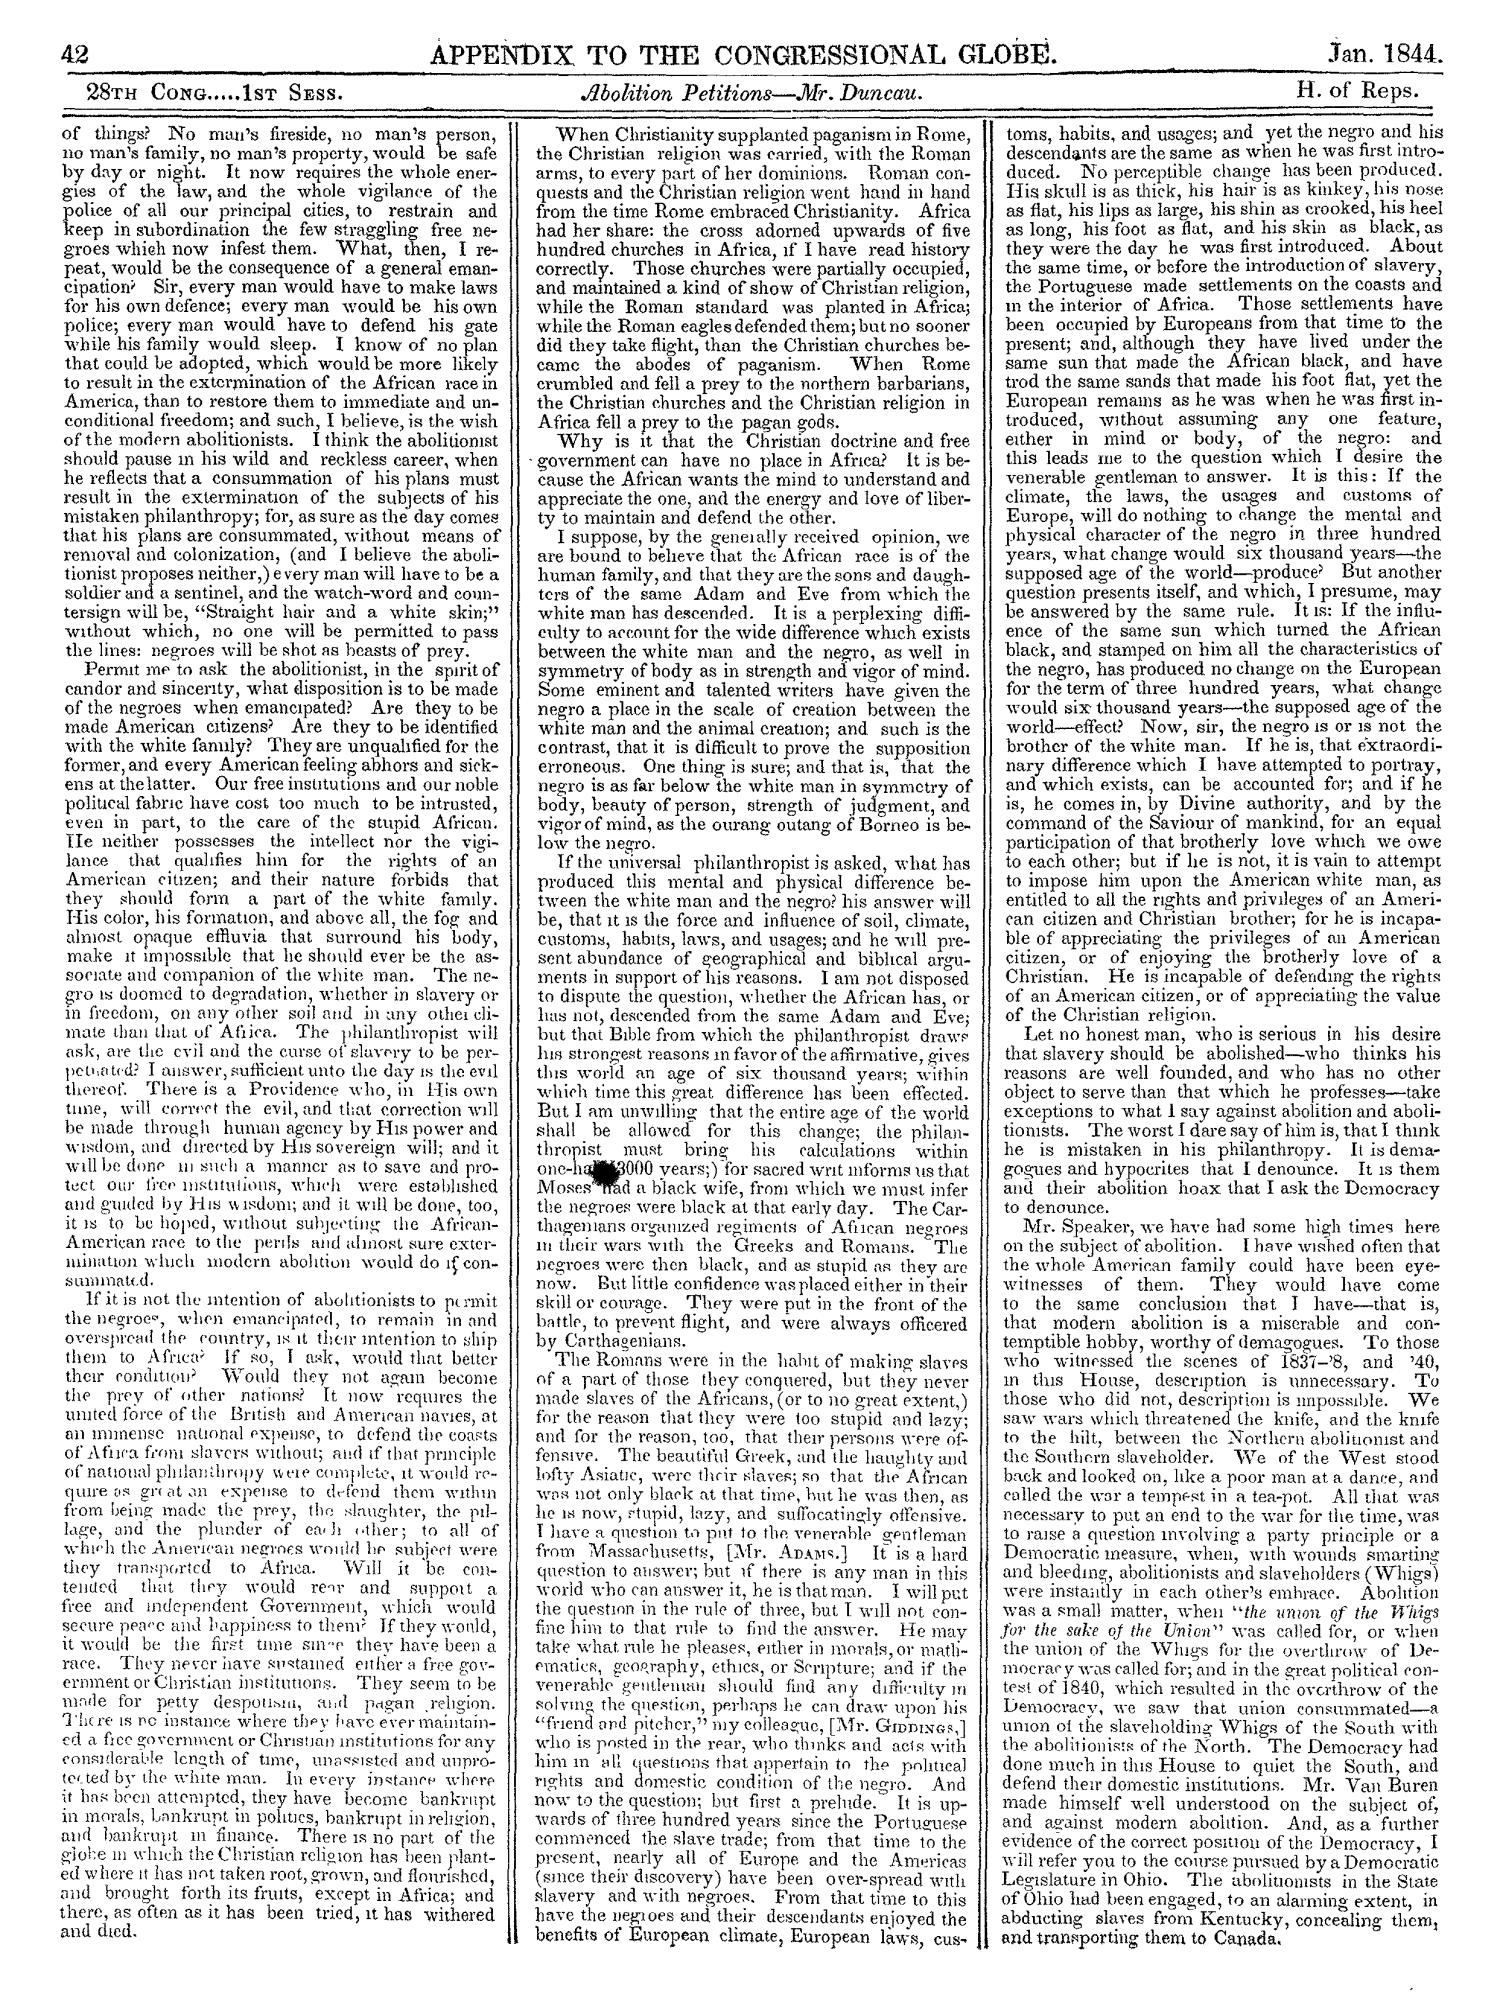 The Congressional Globe, Volume 13, Part 2: Twenty-Eighth Congress, First Session                                                                                                      42